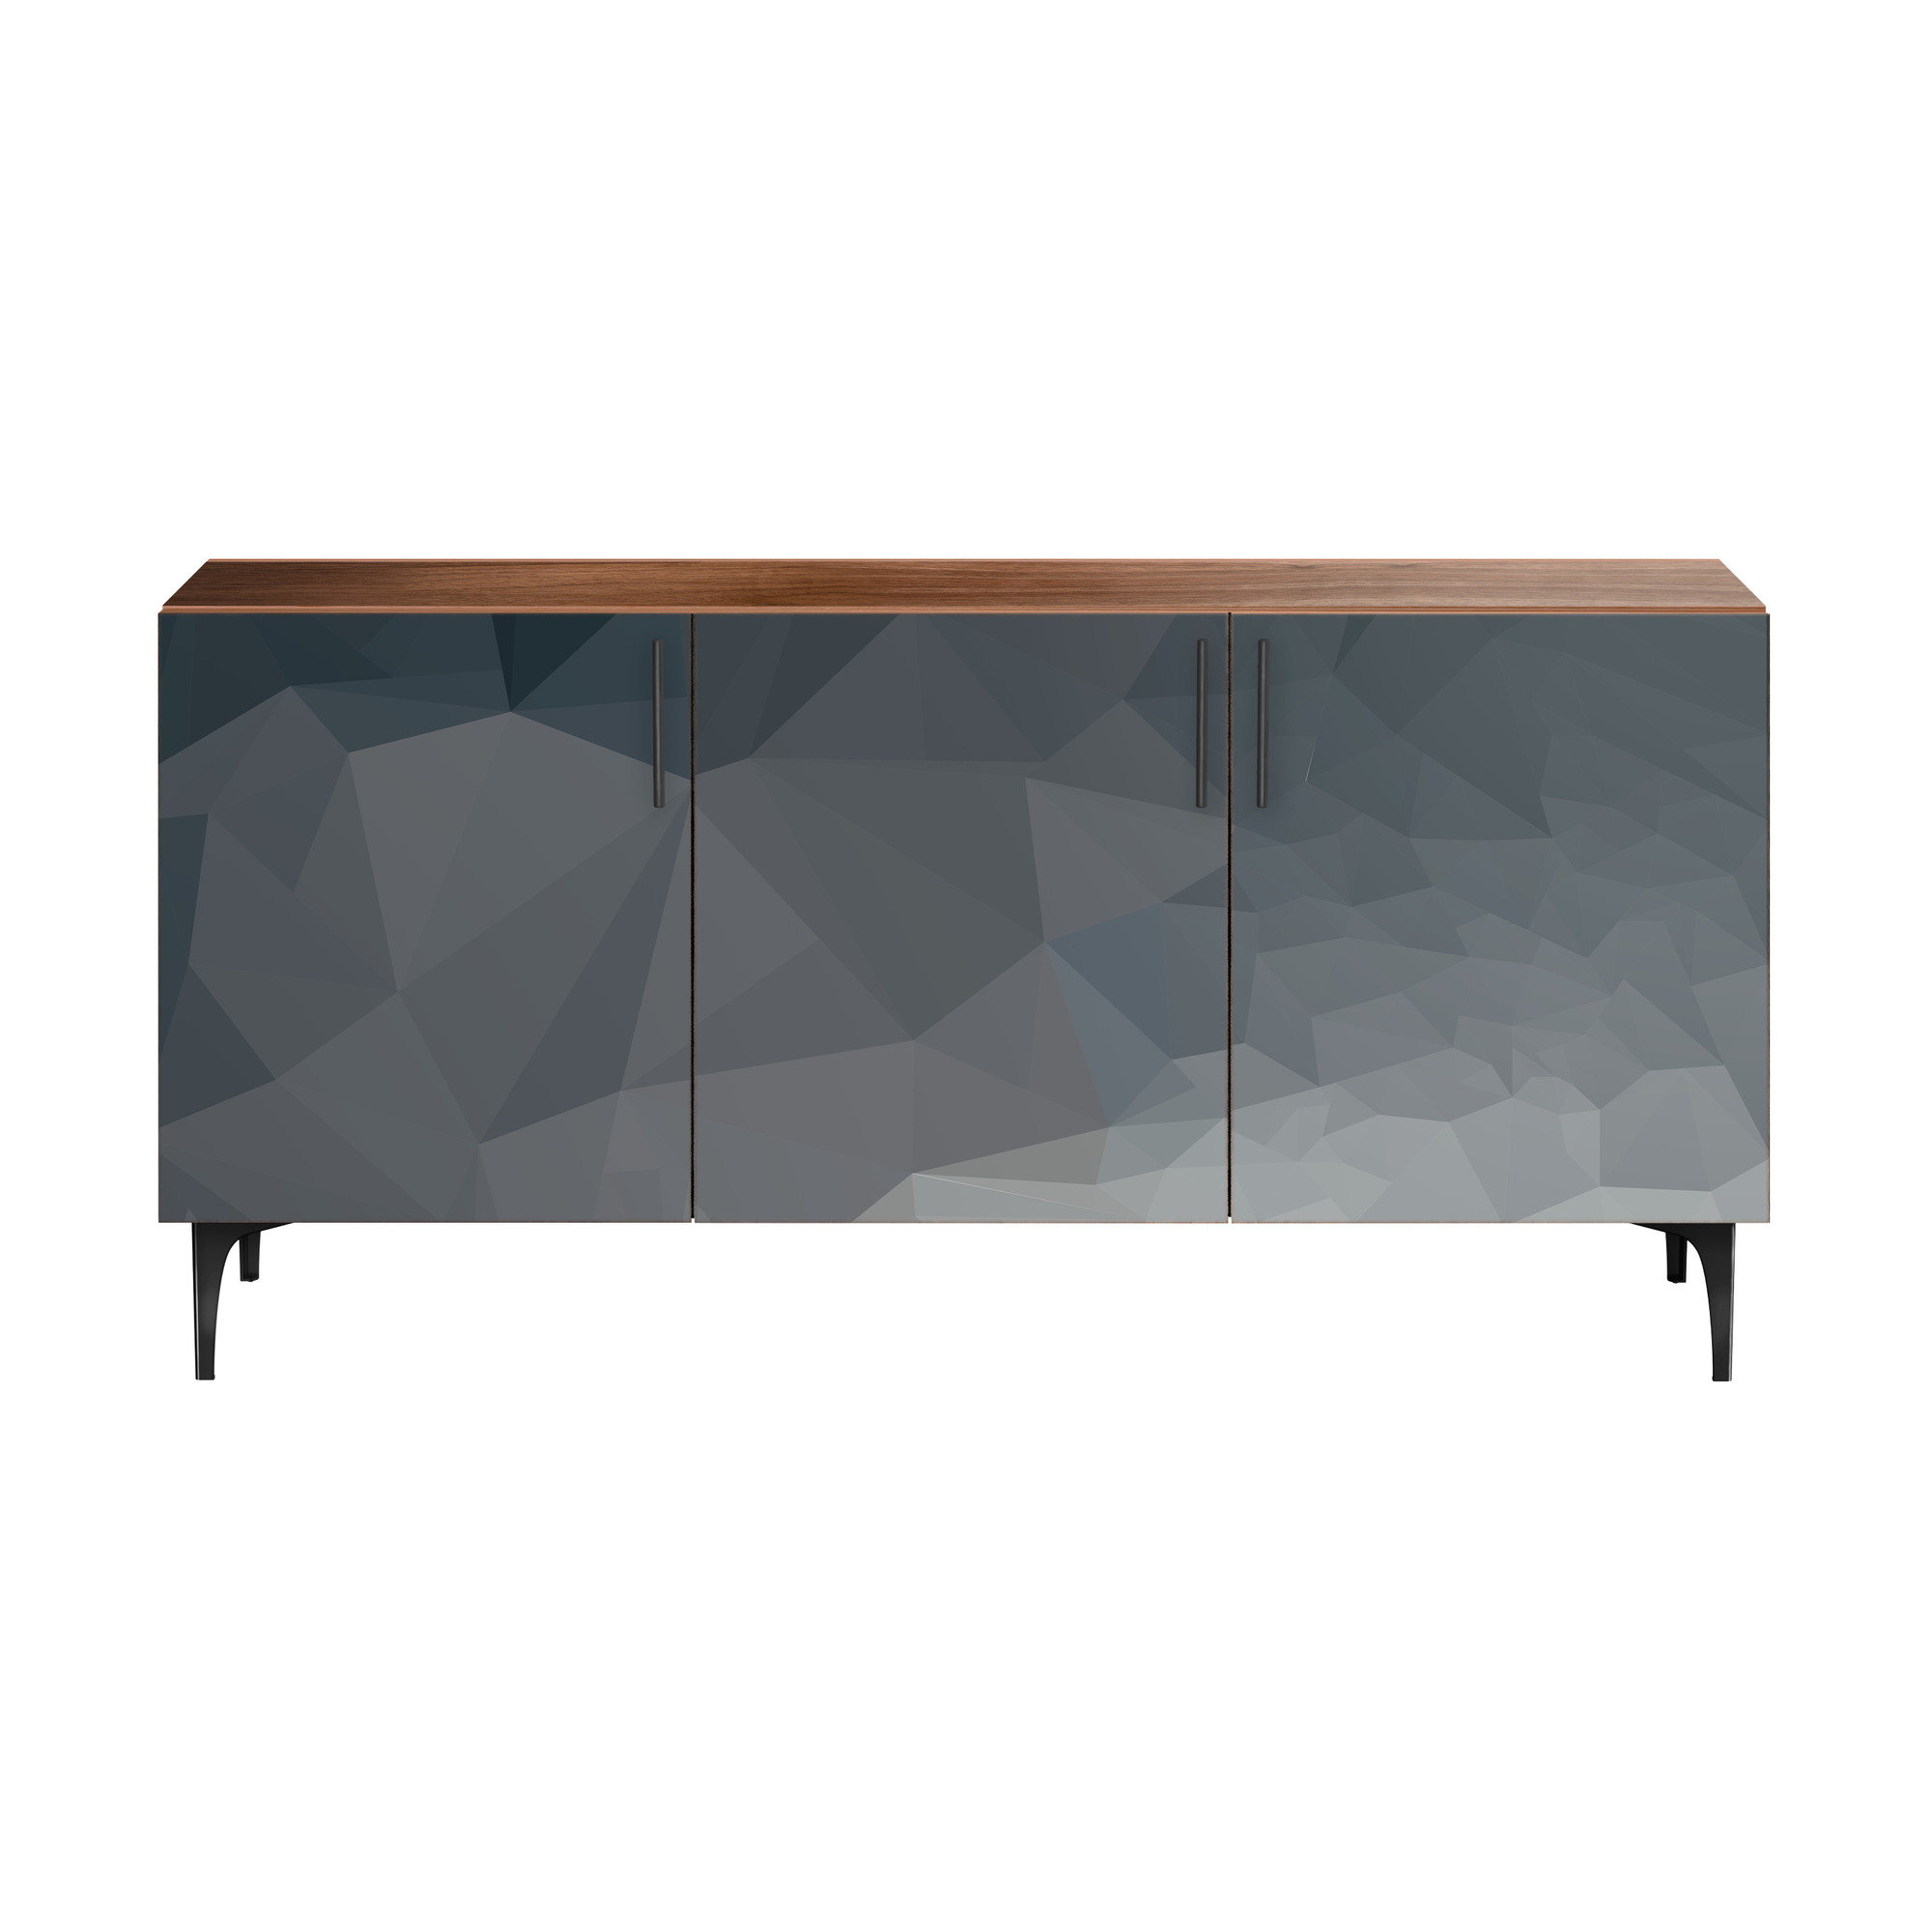 Wayfair With Regard To Most Current Clifton Sideboards (Gallery 16 of 20)